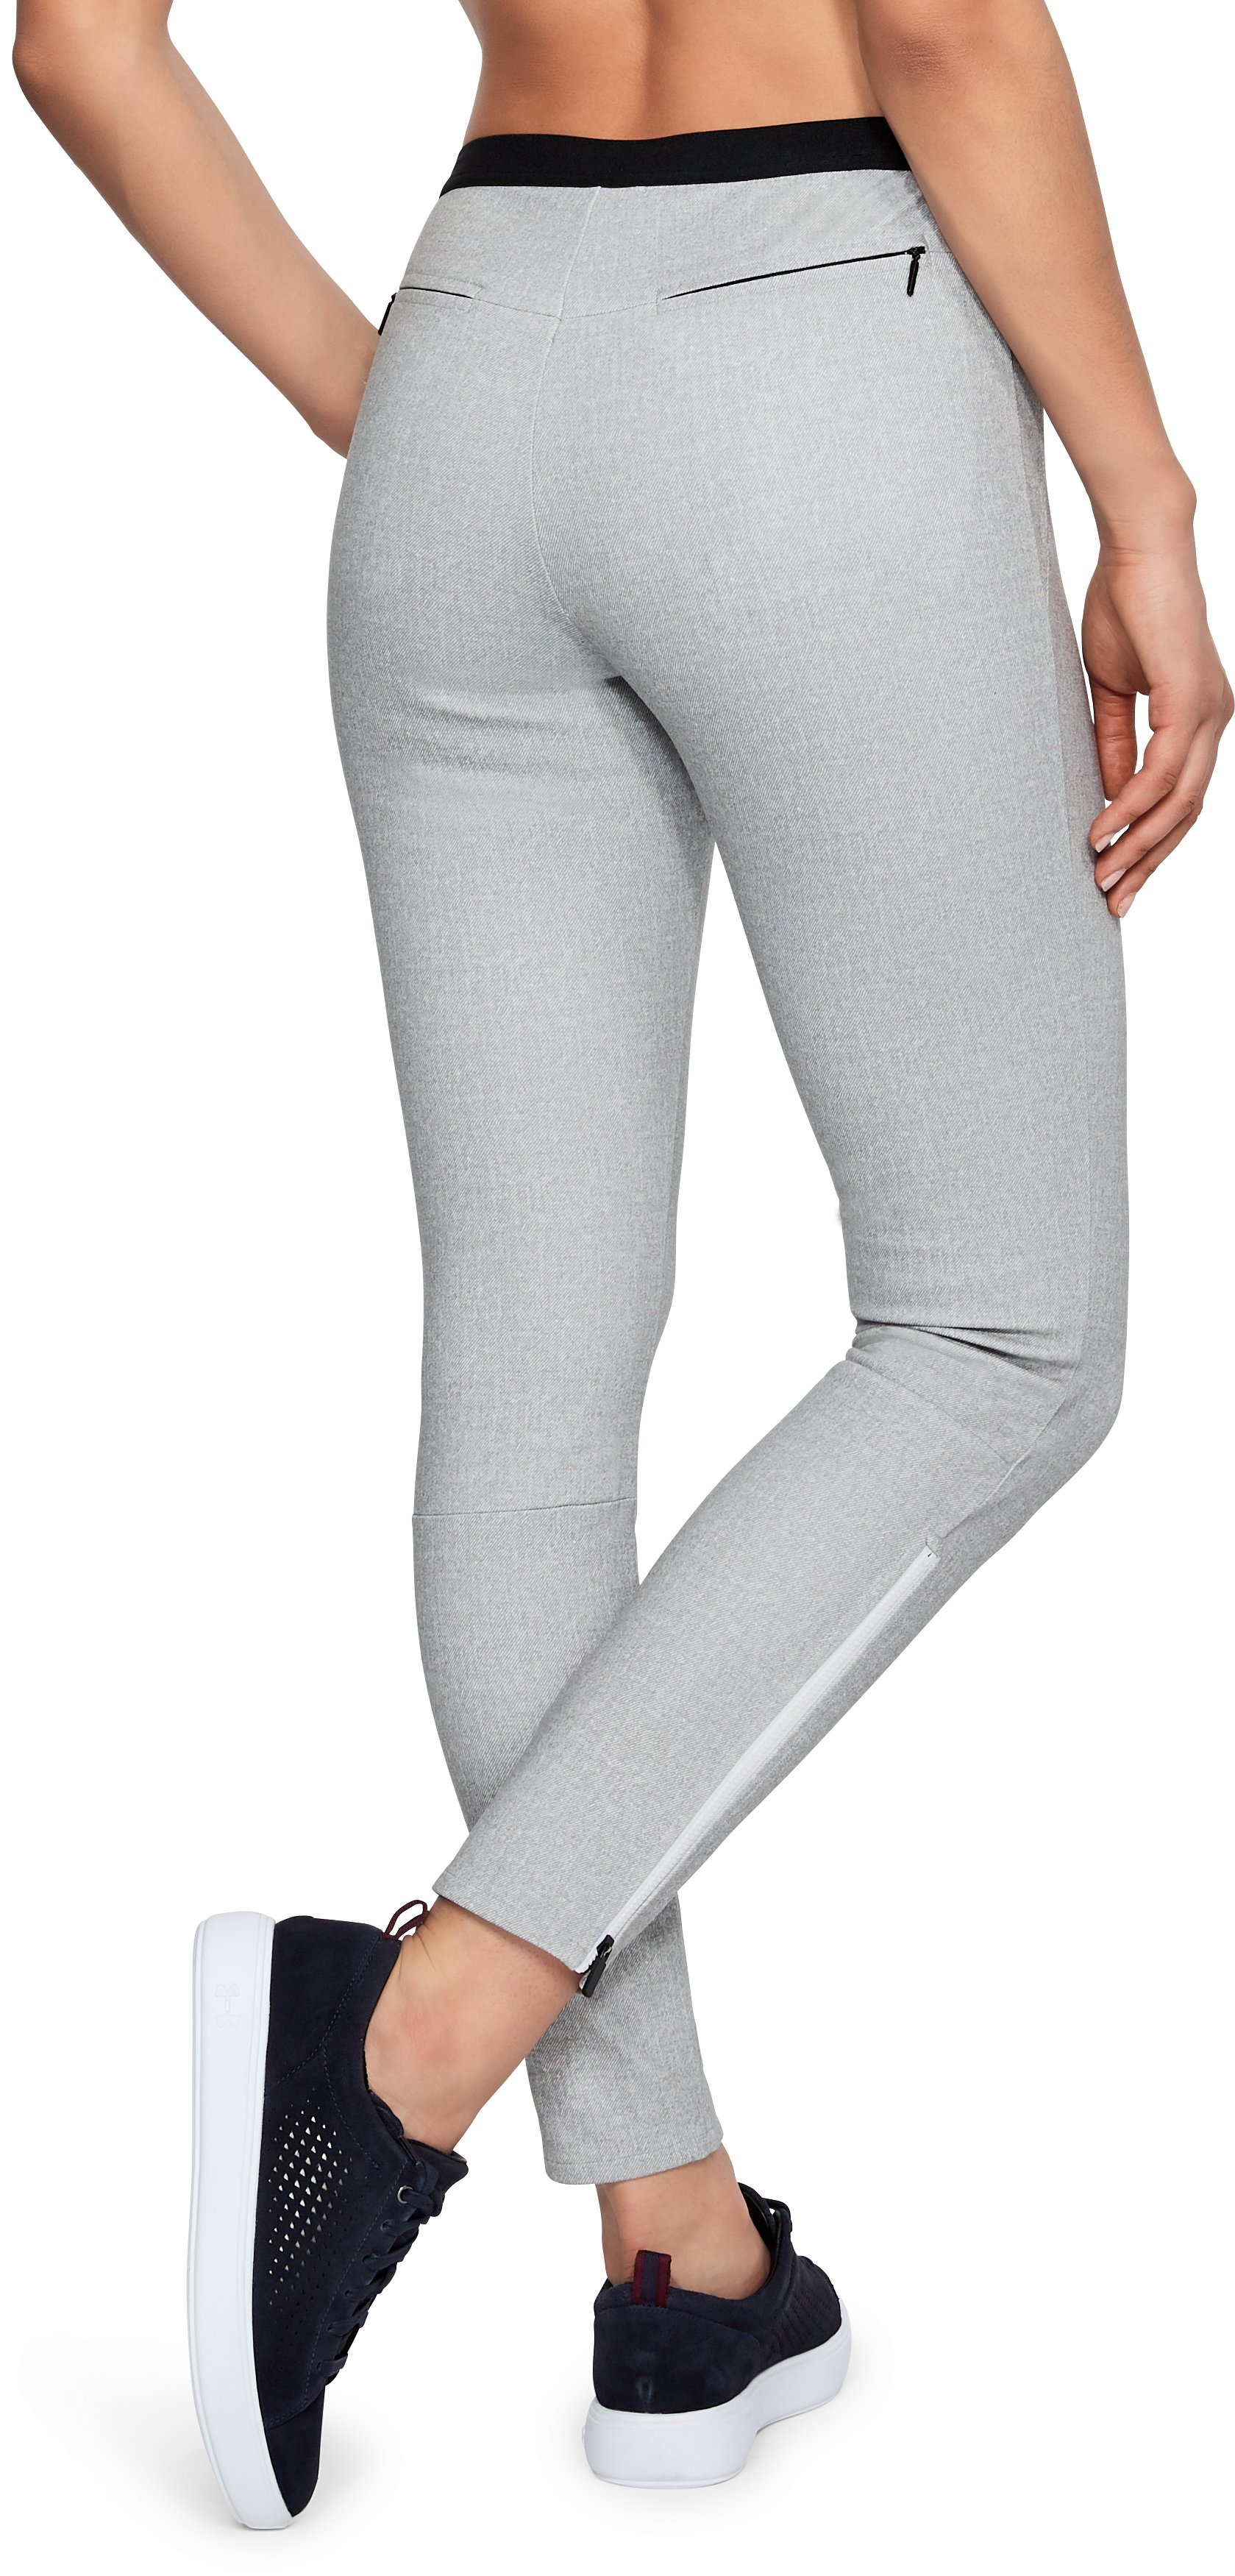 Women's UAS Tailored Stretch Pants, UAS LIGHT HEATHER GRAY, undefined